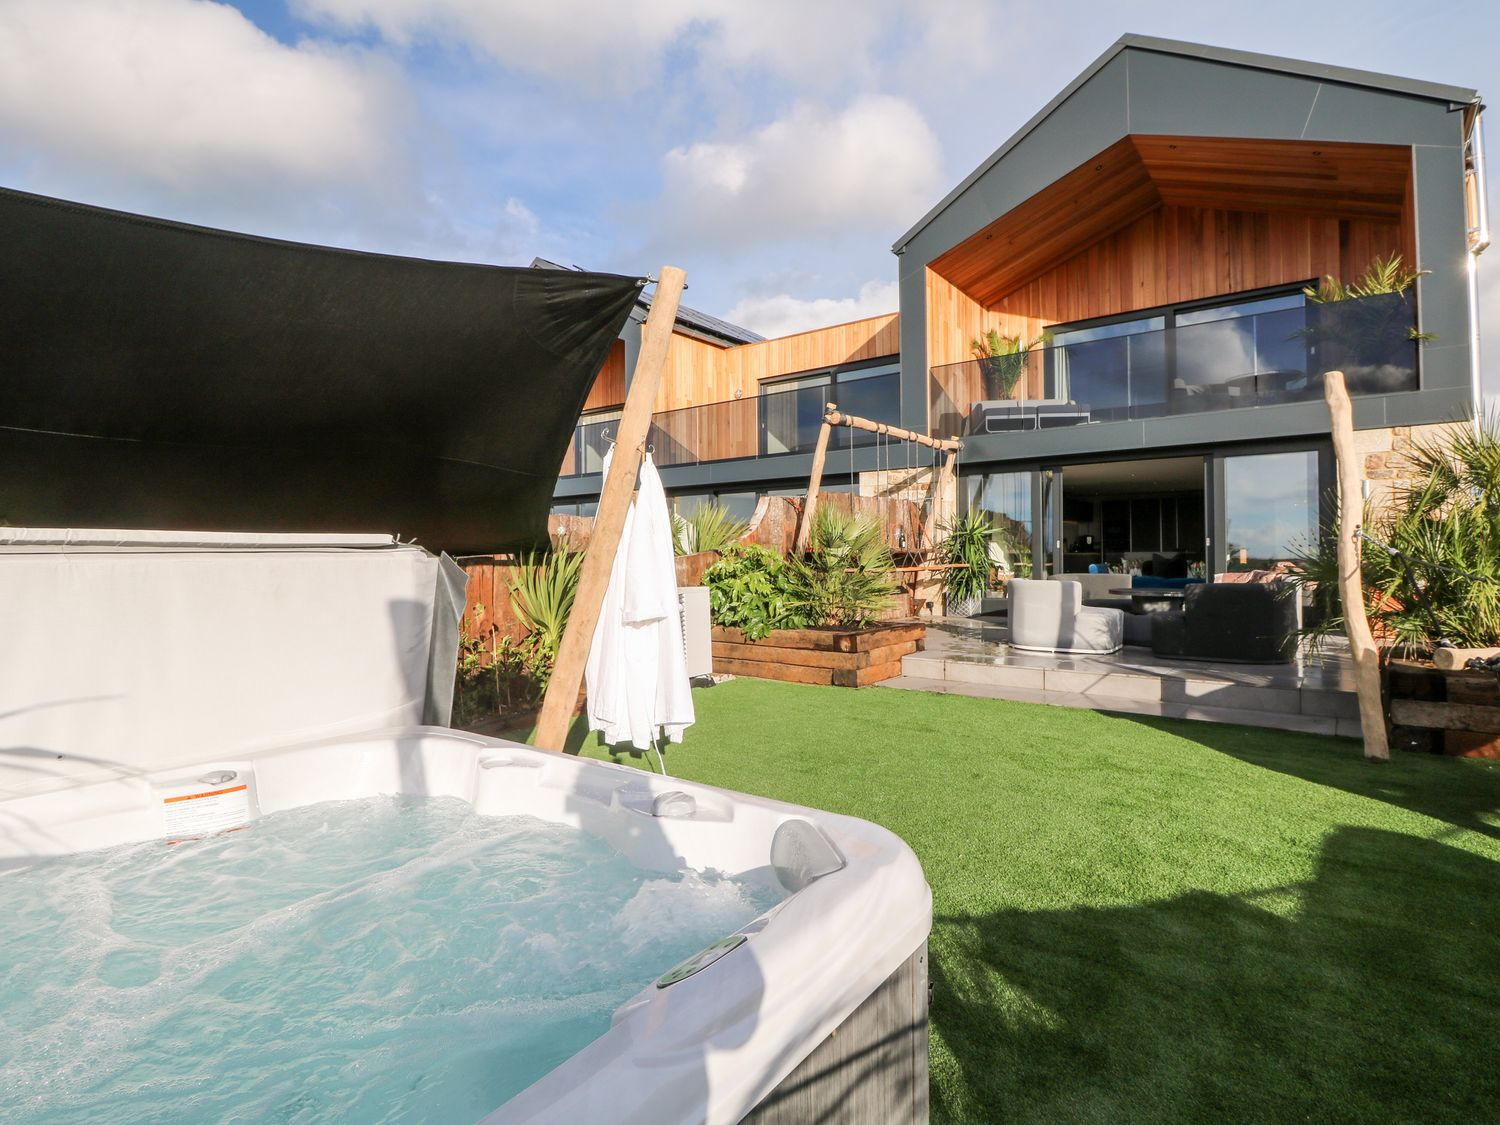 A hot tub is a welcome addition to a holiday property - get ready for spring